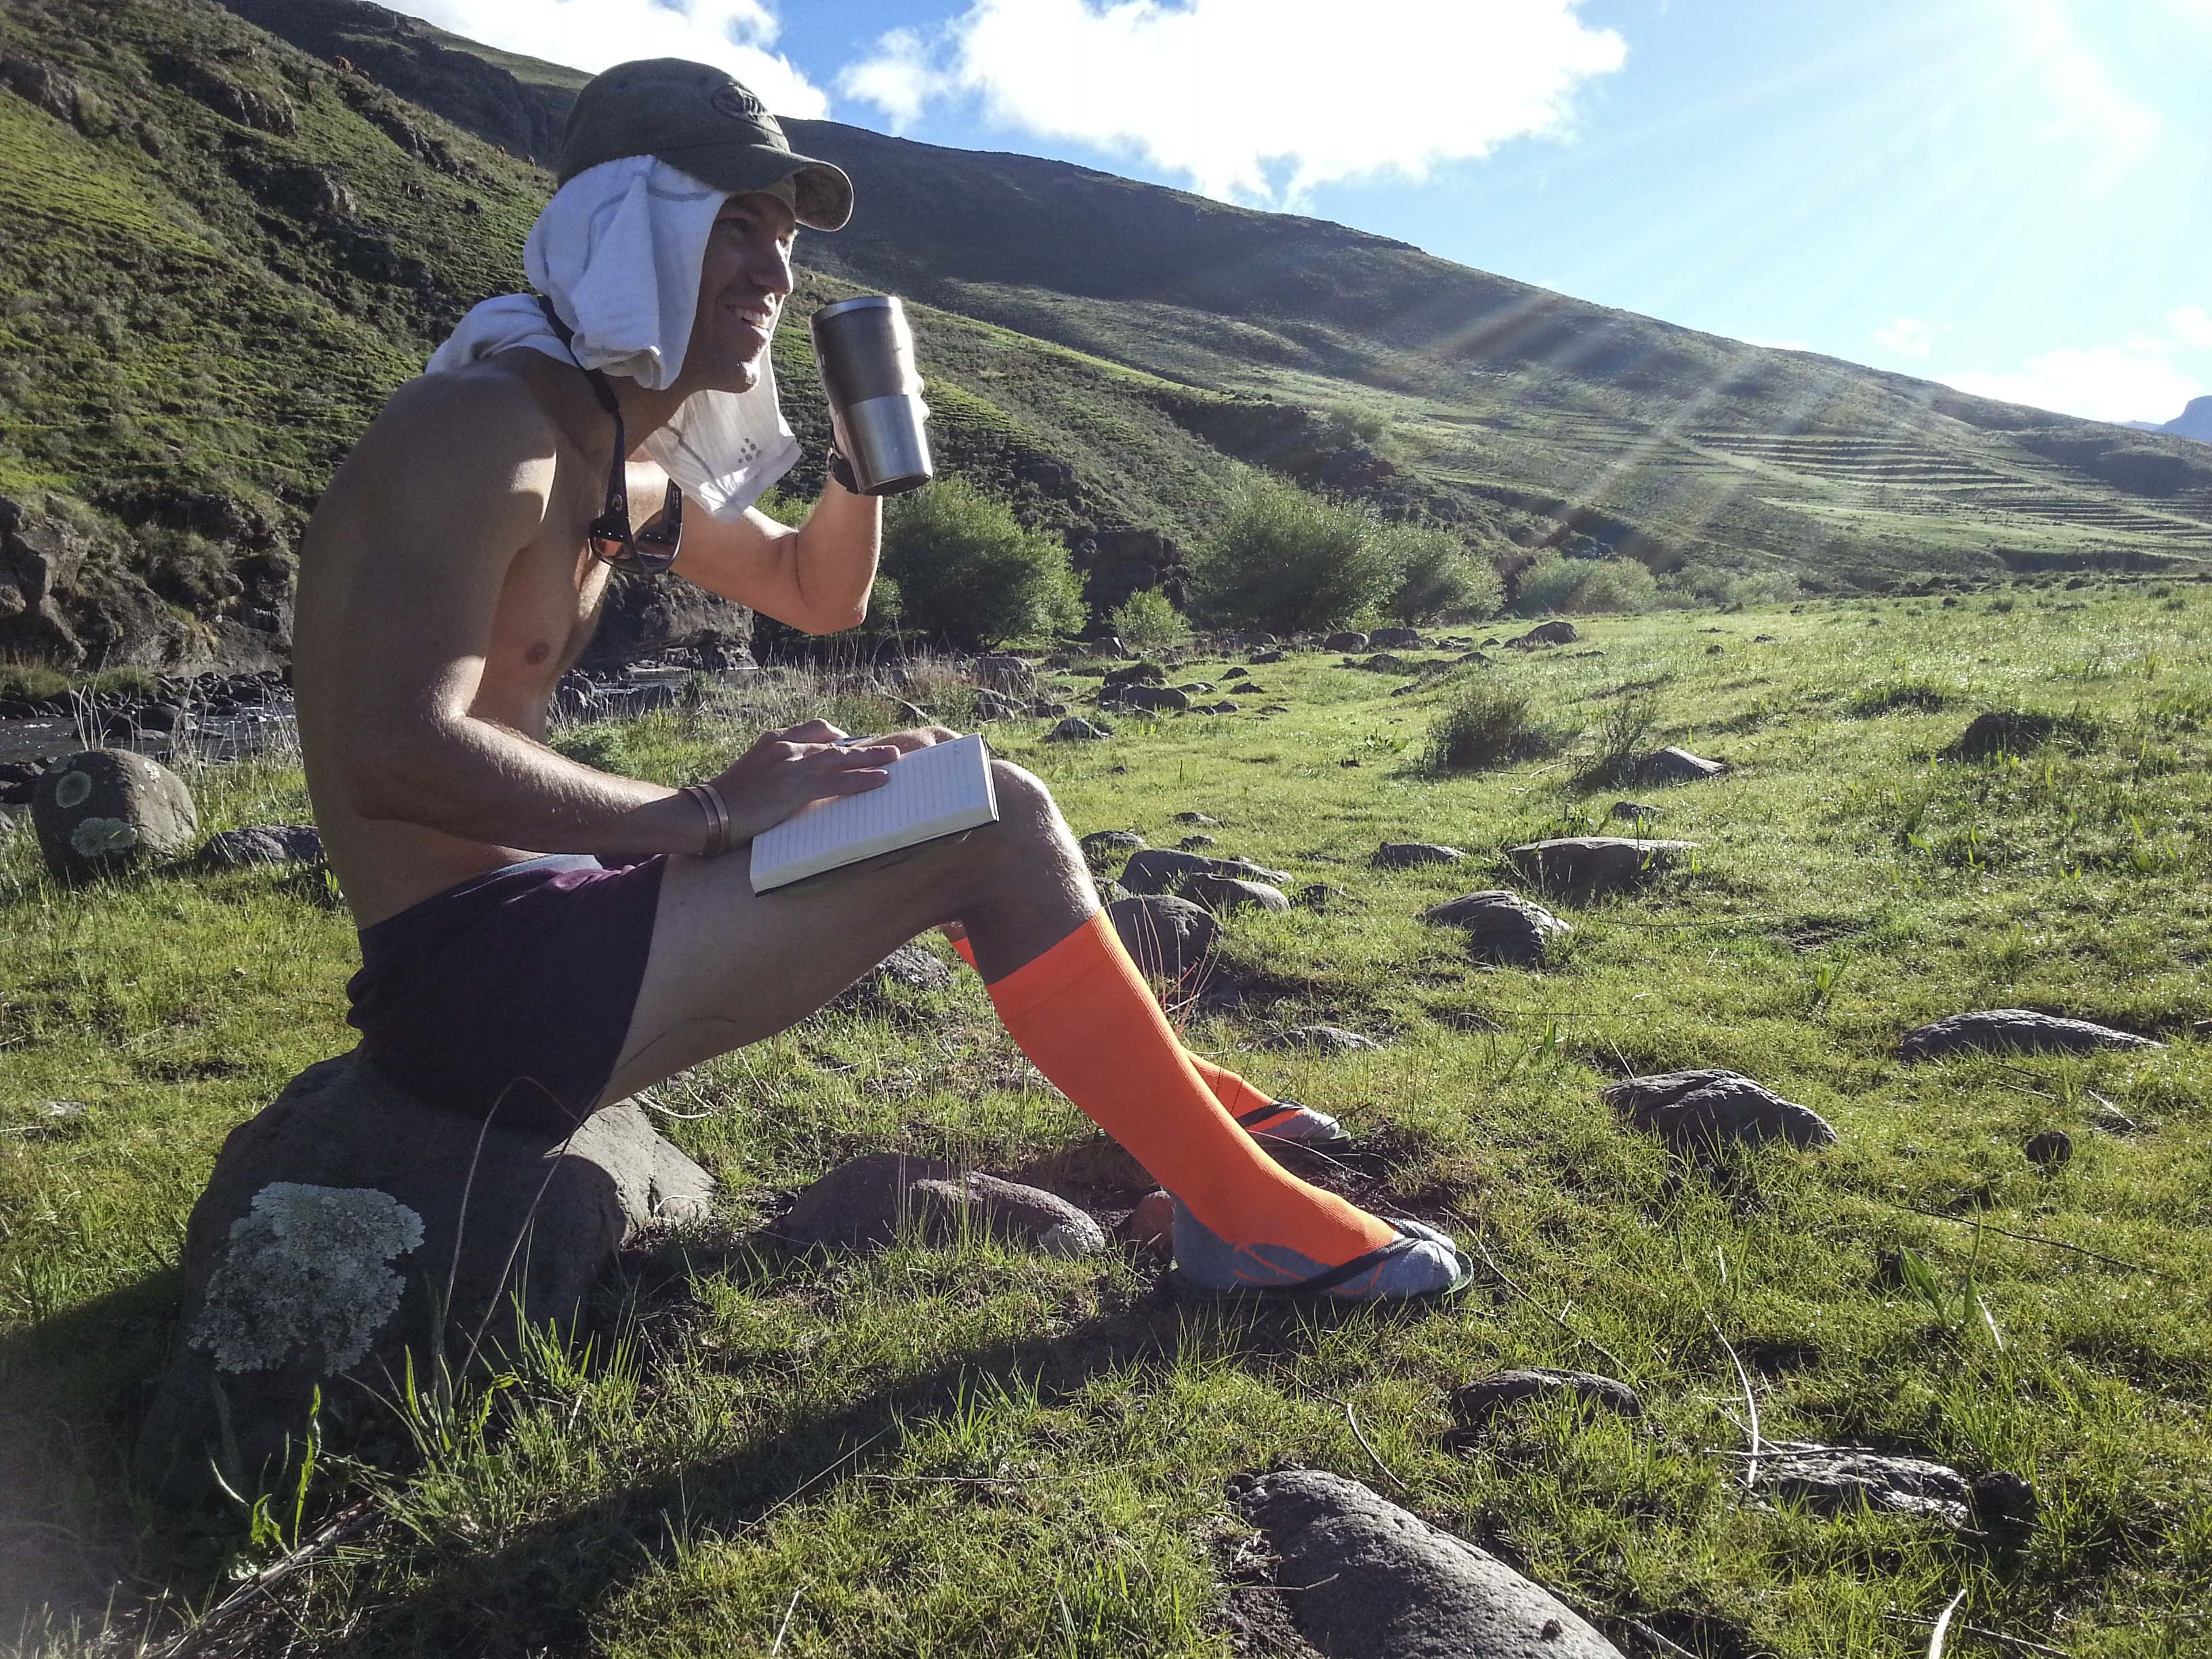 Coffee, journal and views. Life is only better in neon socks!